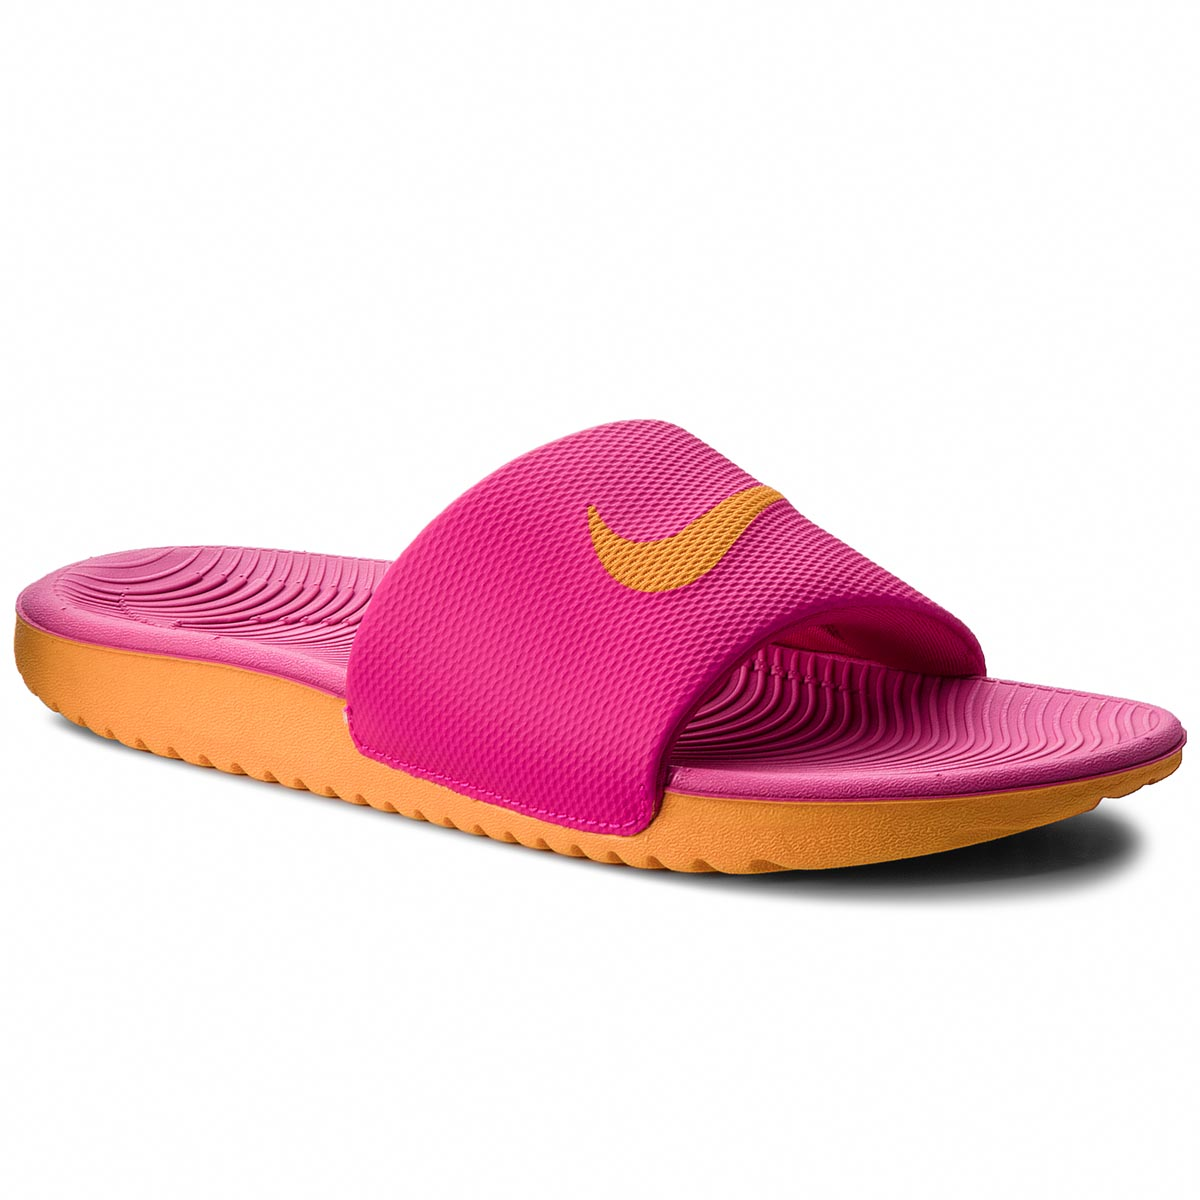 Șlapi NIKE - Kawa Slide 834588 605 Pink Prime/Orange Peel